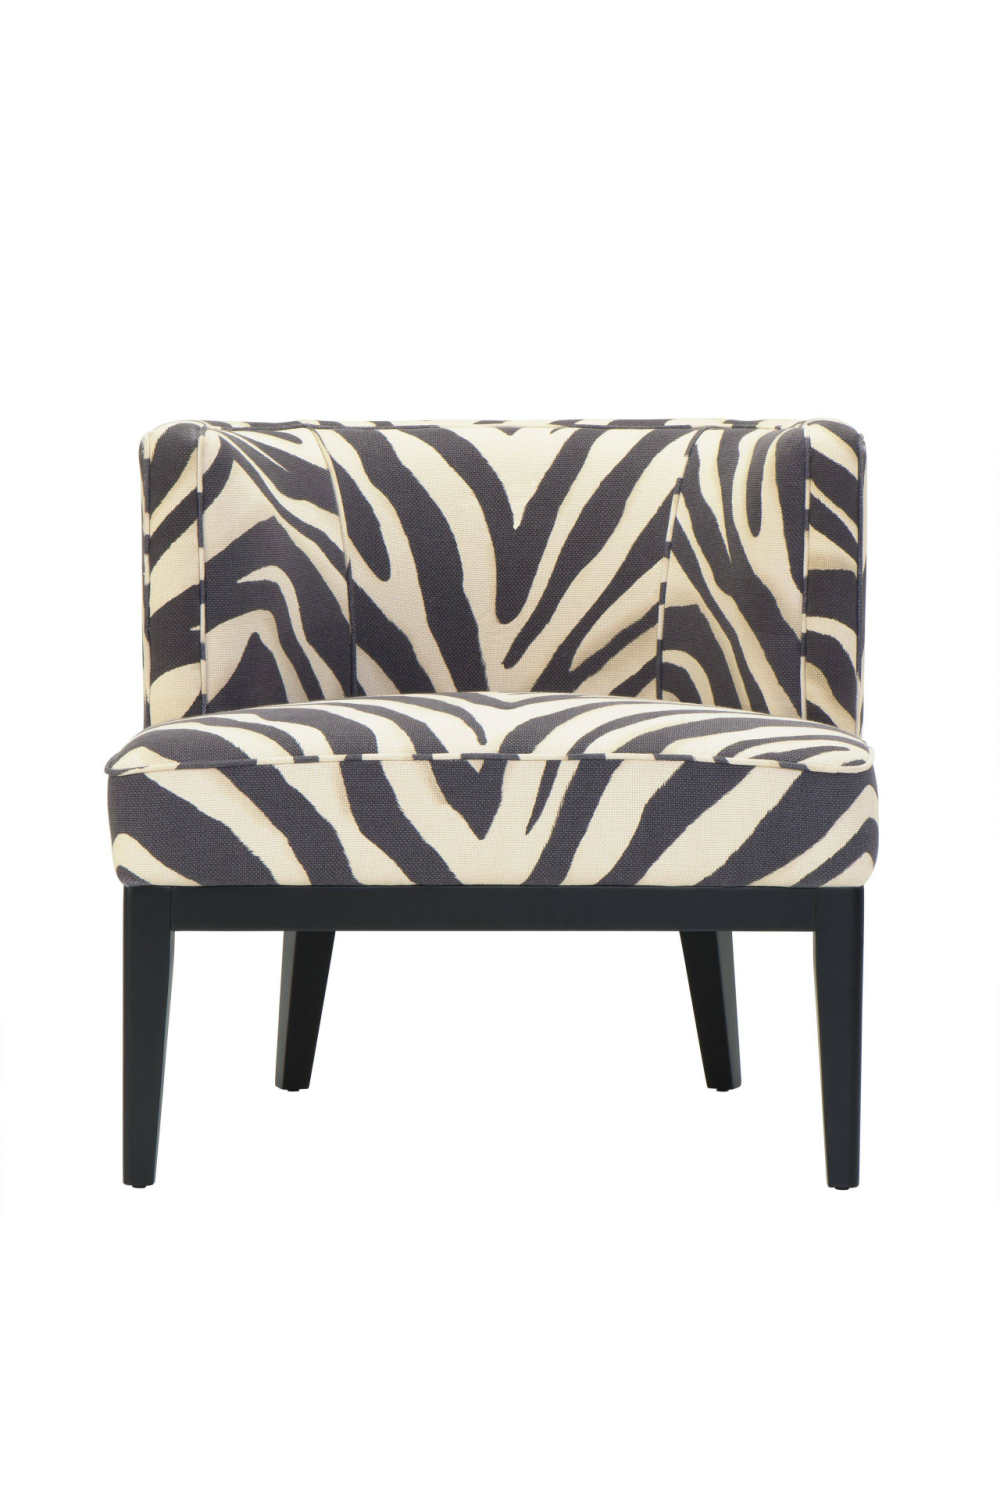 Zebra Print Accent Chair | Eichholtz Baldessari